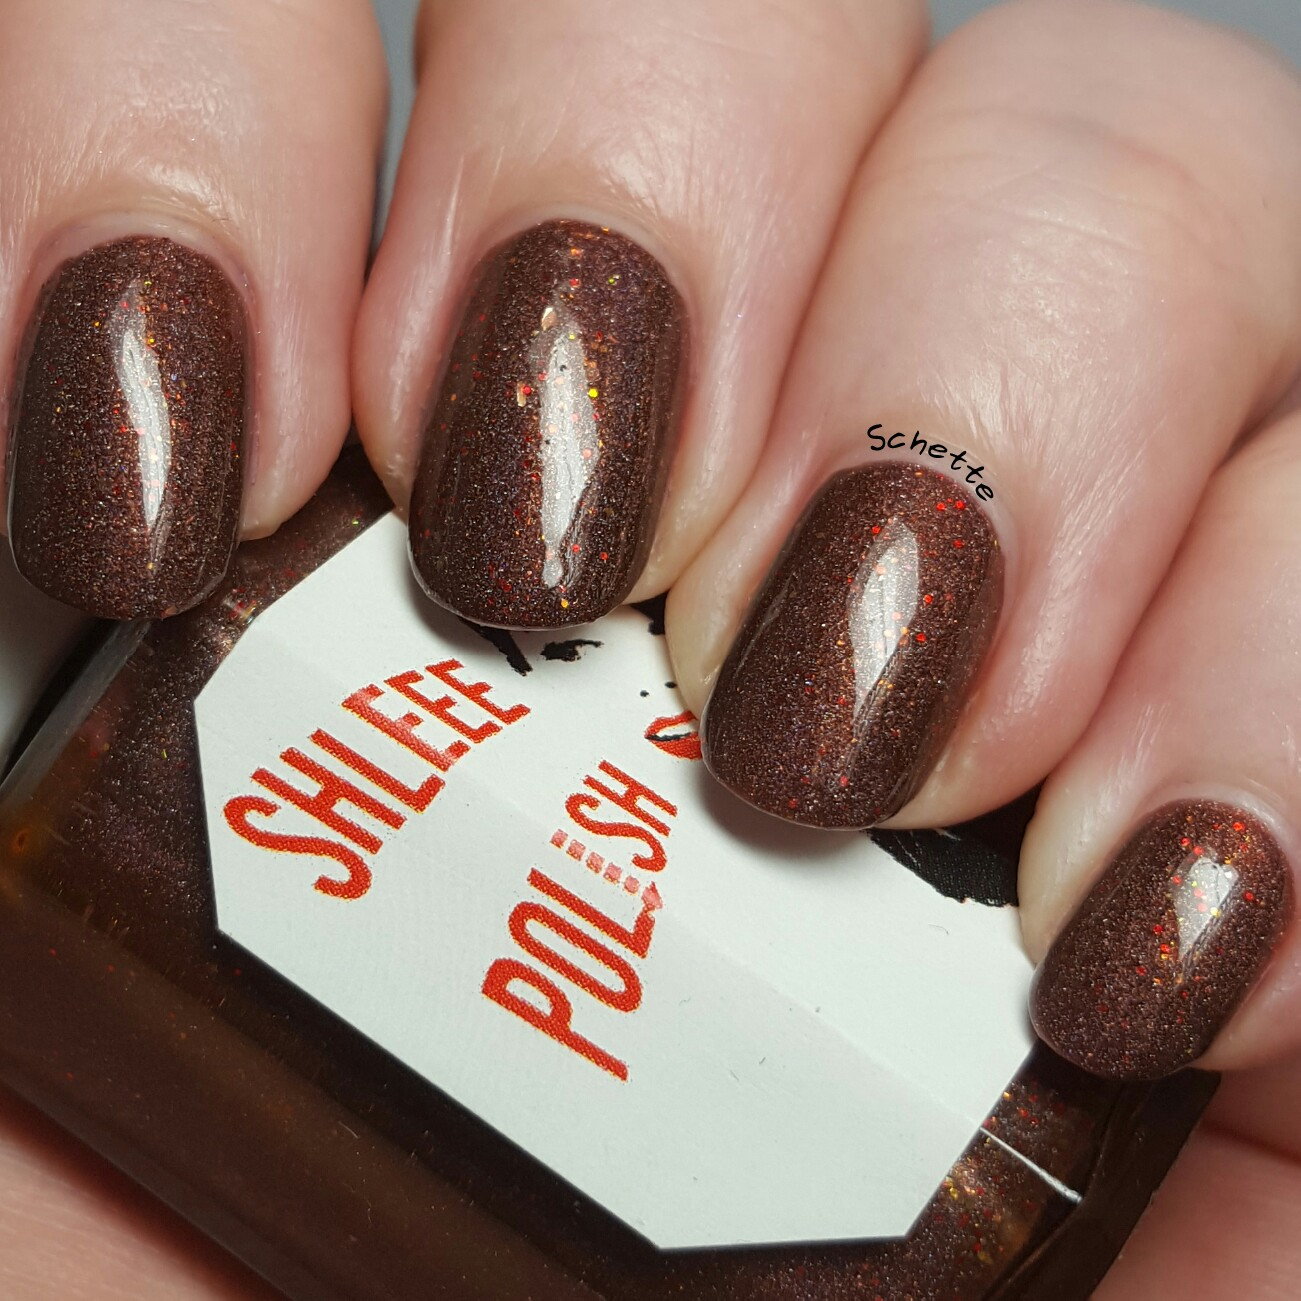 Shleee Polish : Sample 2, the falling king